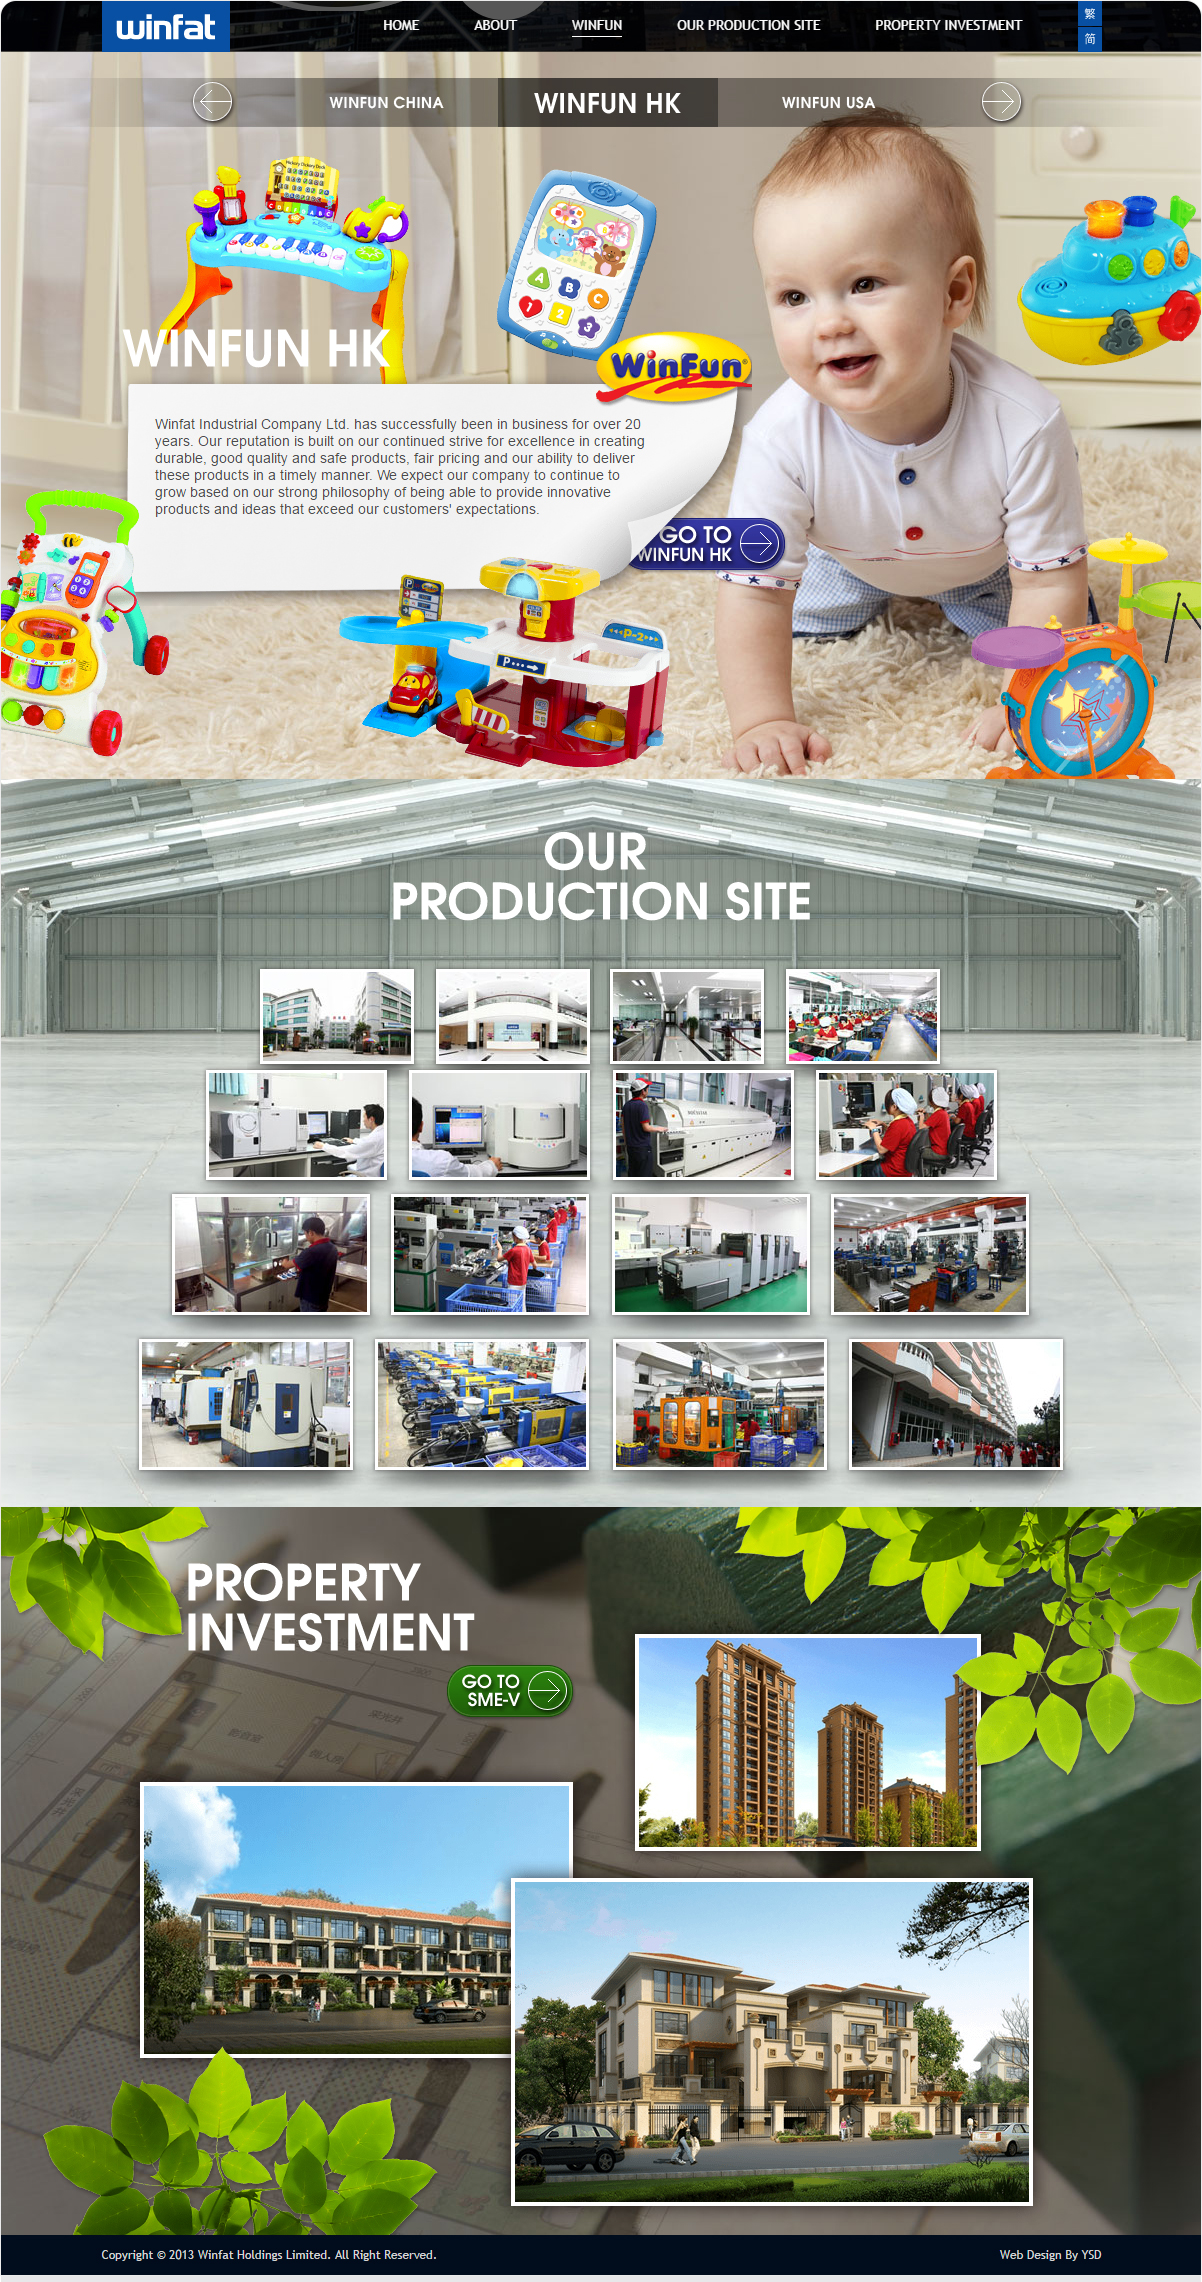 Winfat Holdings Limited